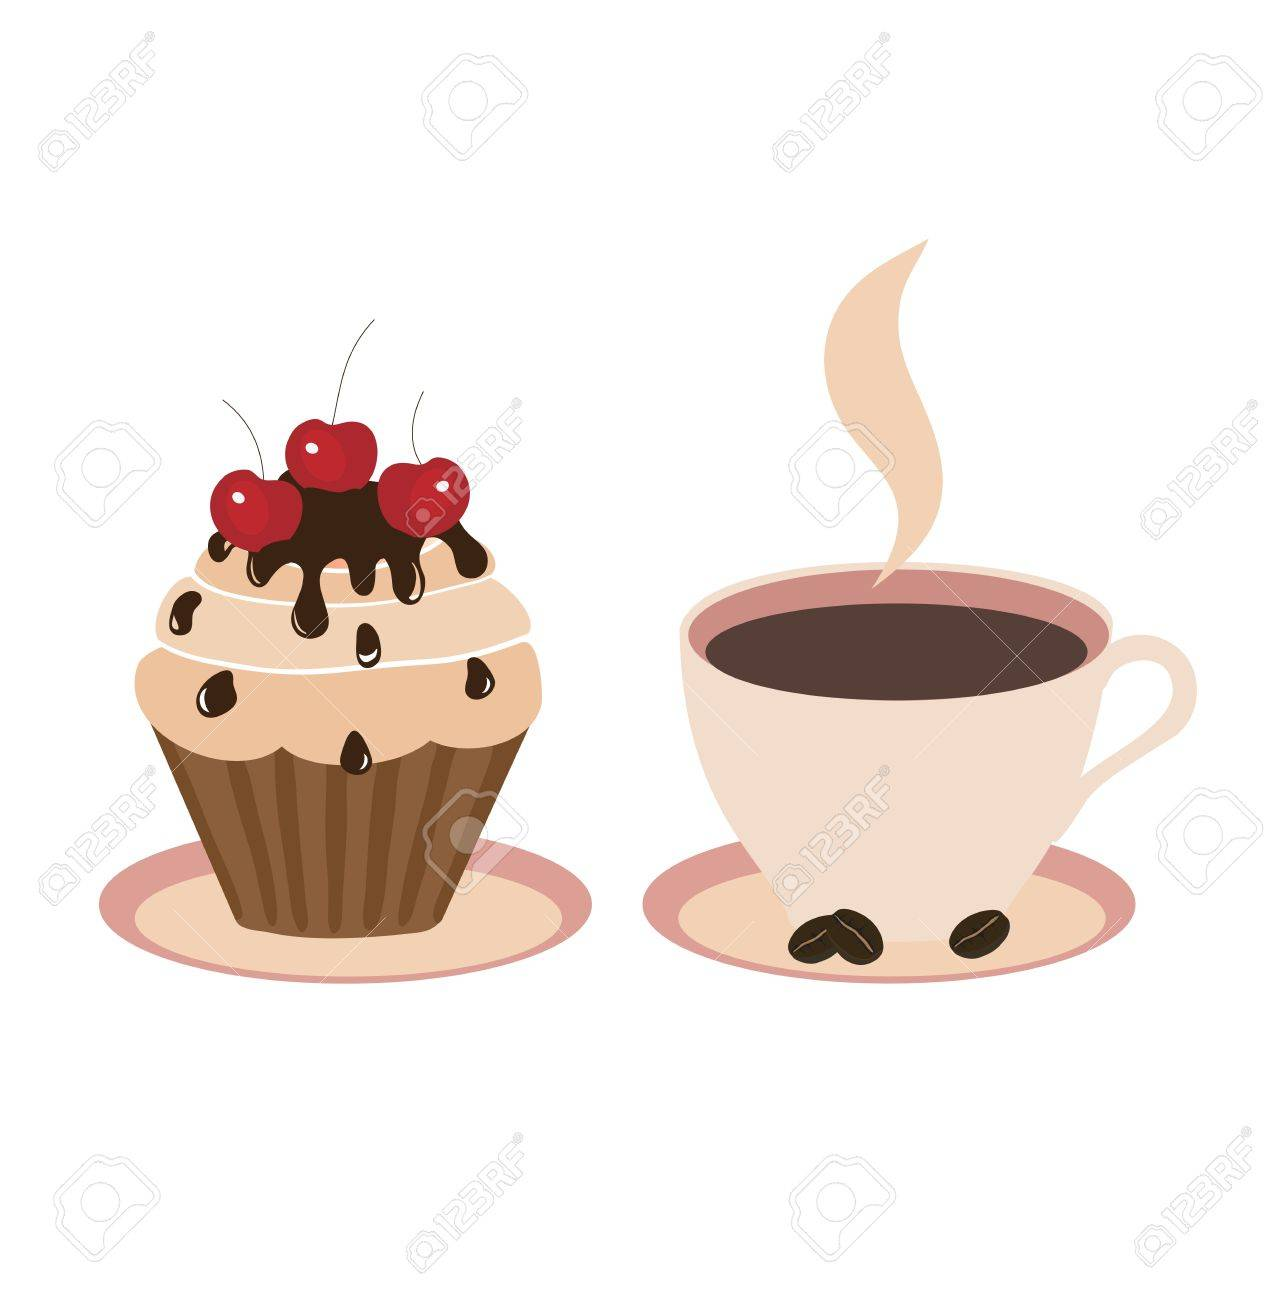 Sweet cake and cup on a light background Stock Vector - 13610613